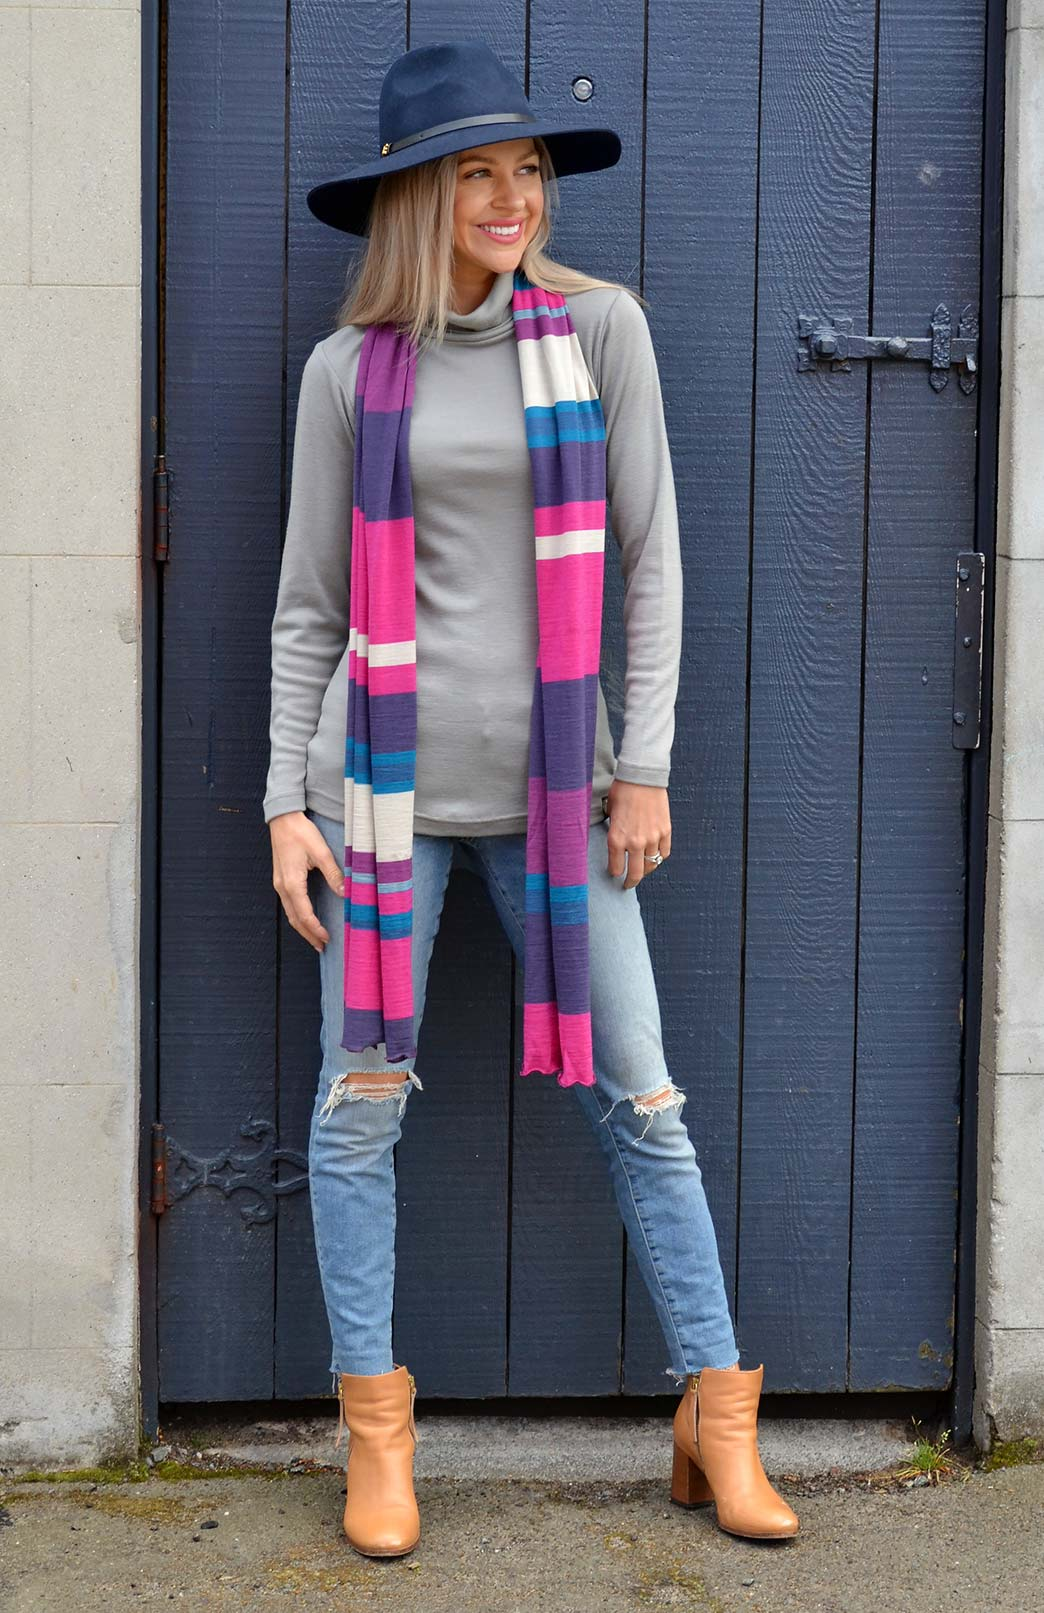 Scarves - Multi Striped - Women's Grape Purple and Pink Multi Striped Wide Wool Scarf - Smitten Merino Tasmania Australia